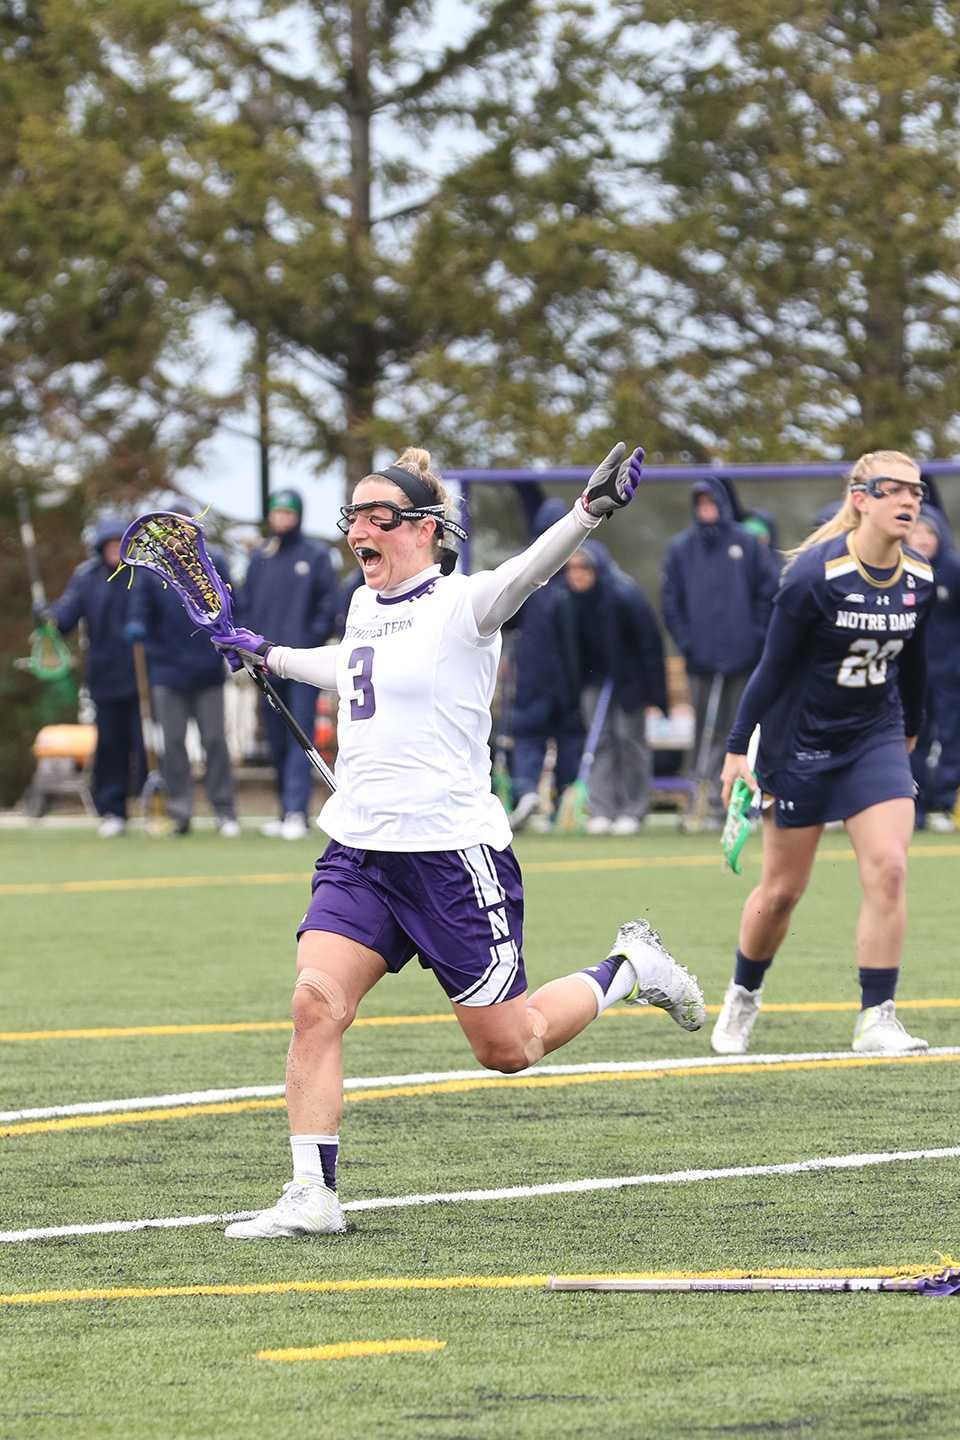 Christina Esposito celebrates a goal against Notre Dame on Sunday. The junior attacker put 4 of the Wildcats' 17 goals in the net.